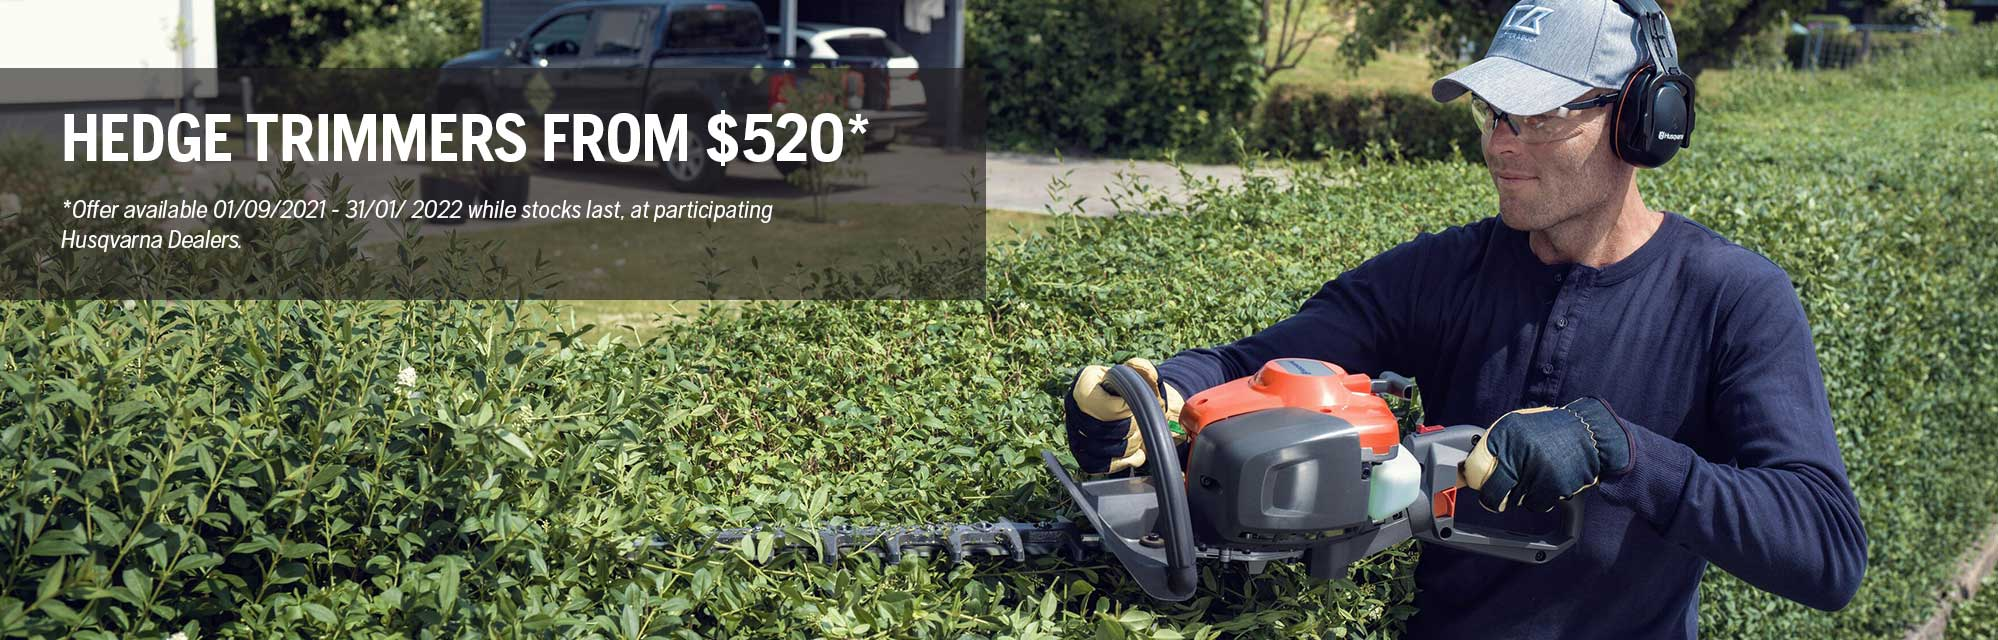 Hedge Trimmers - Spring